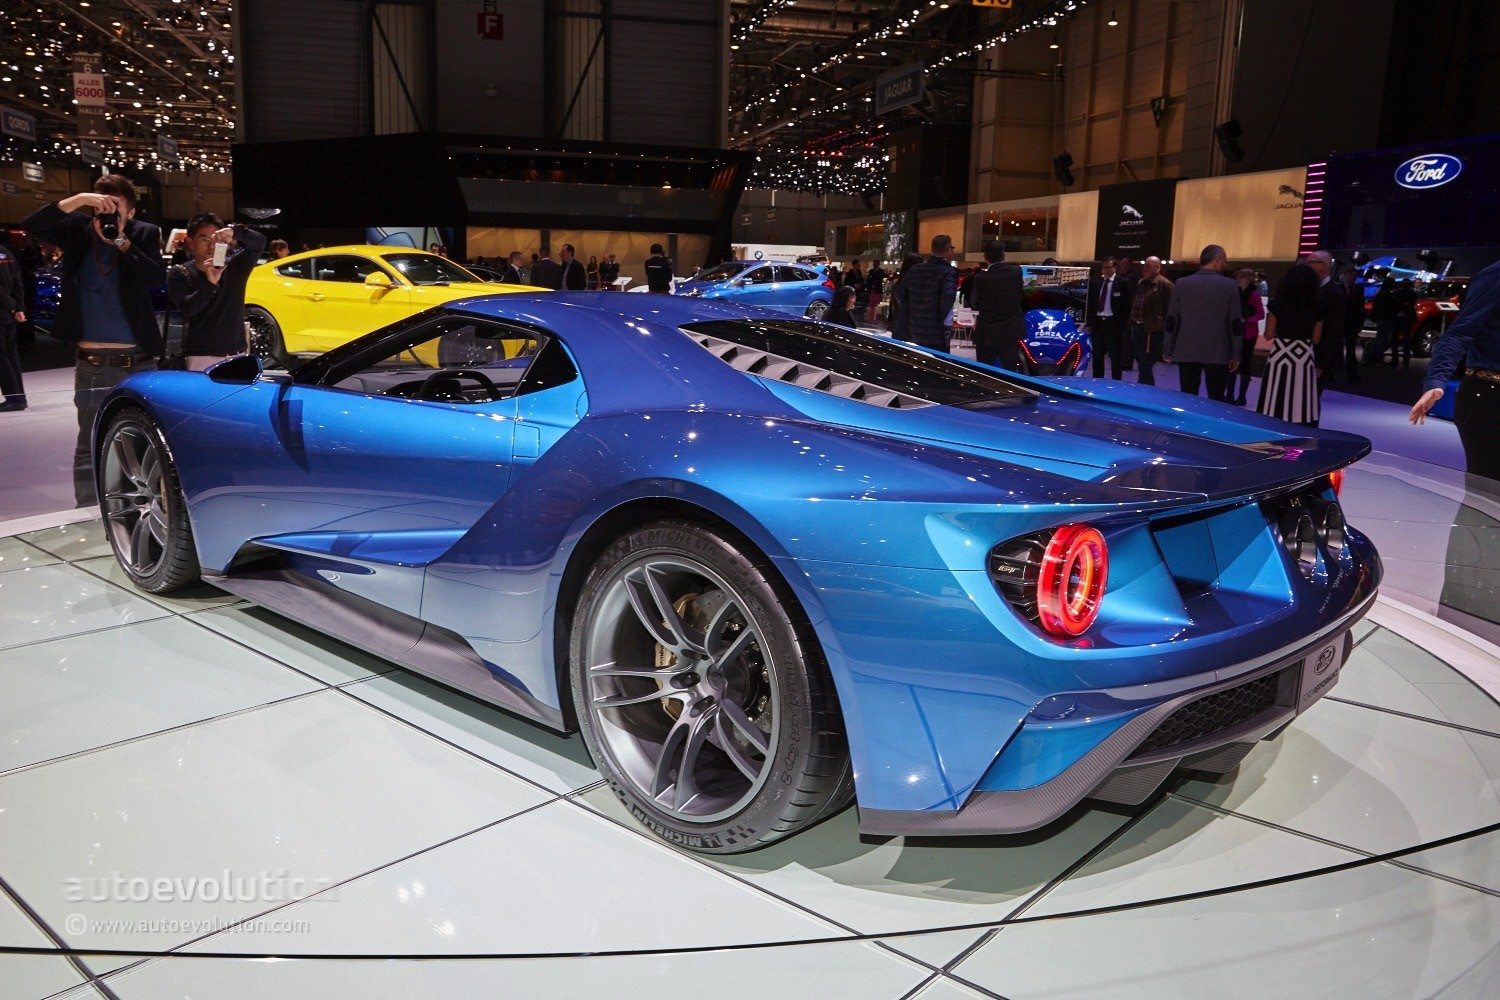 2017 ford gt makes jaws drop at the geneva motor show - Auto motor show ...